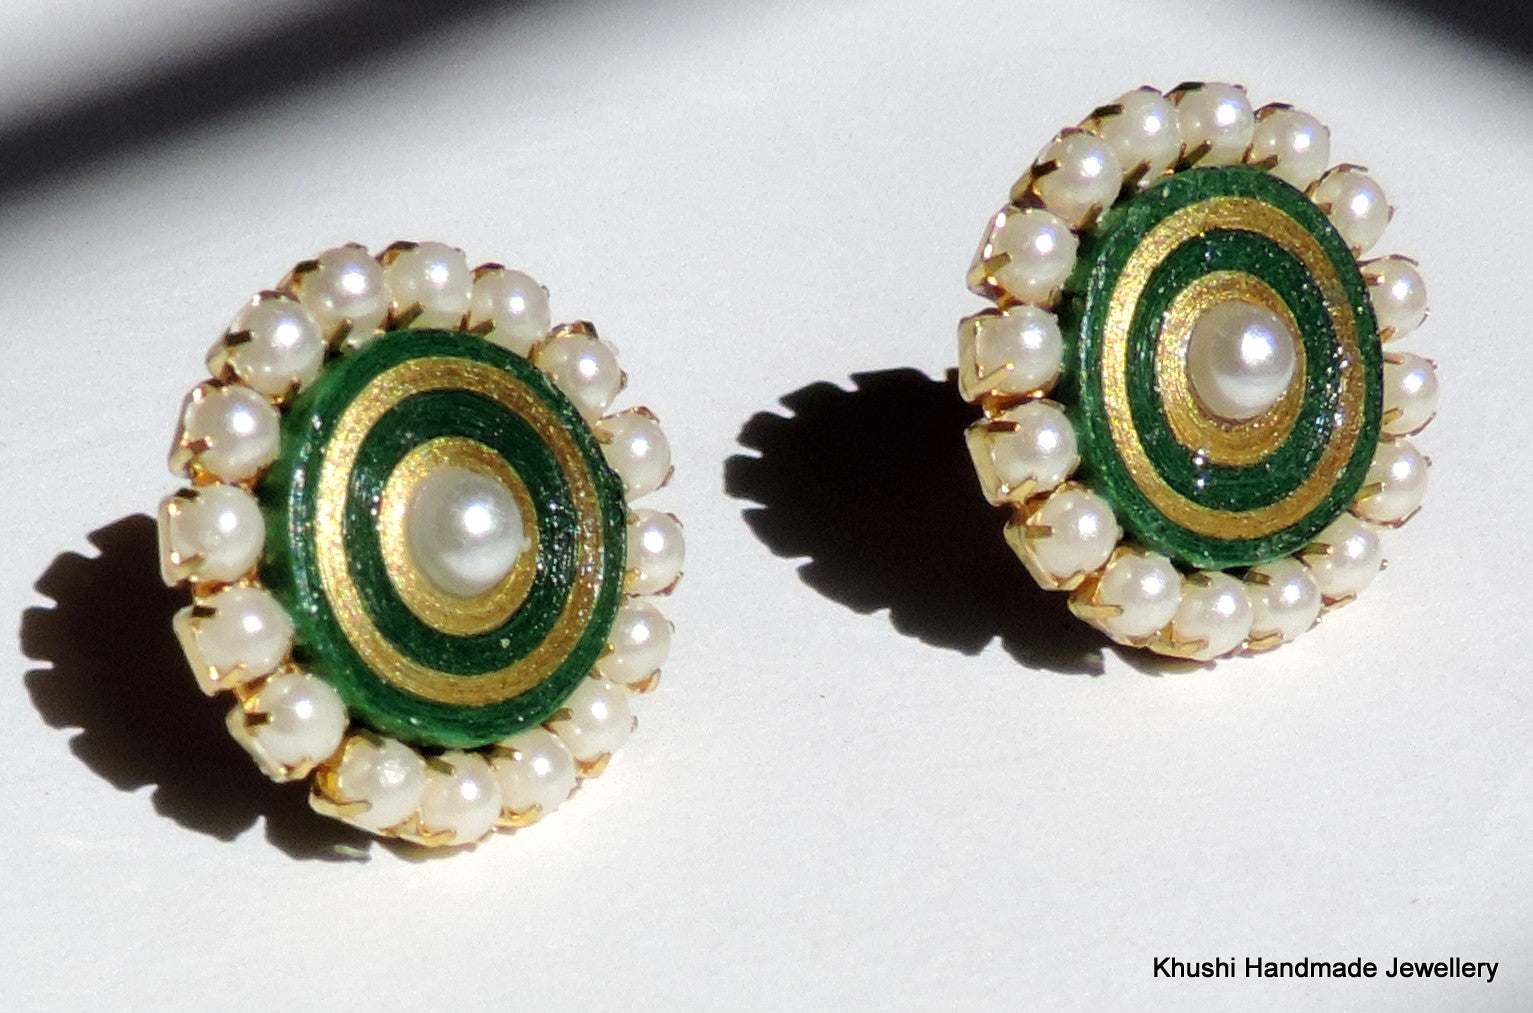 Green studs with pearl lining - Khushi Handmade Jewellery